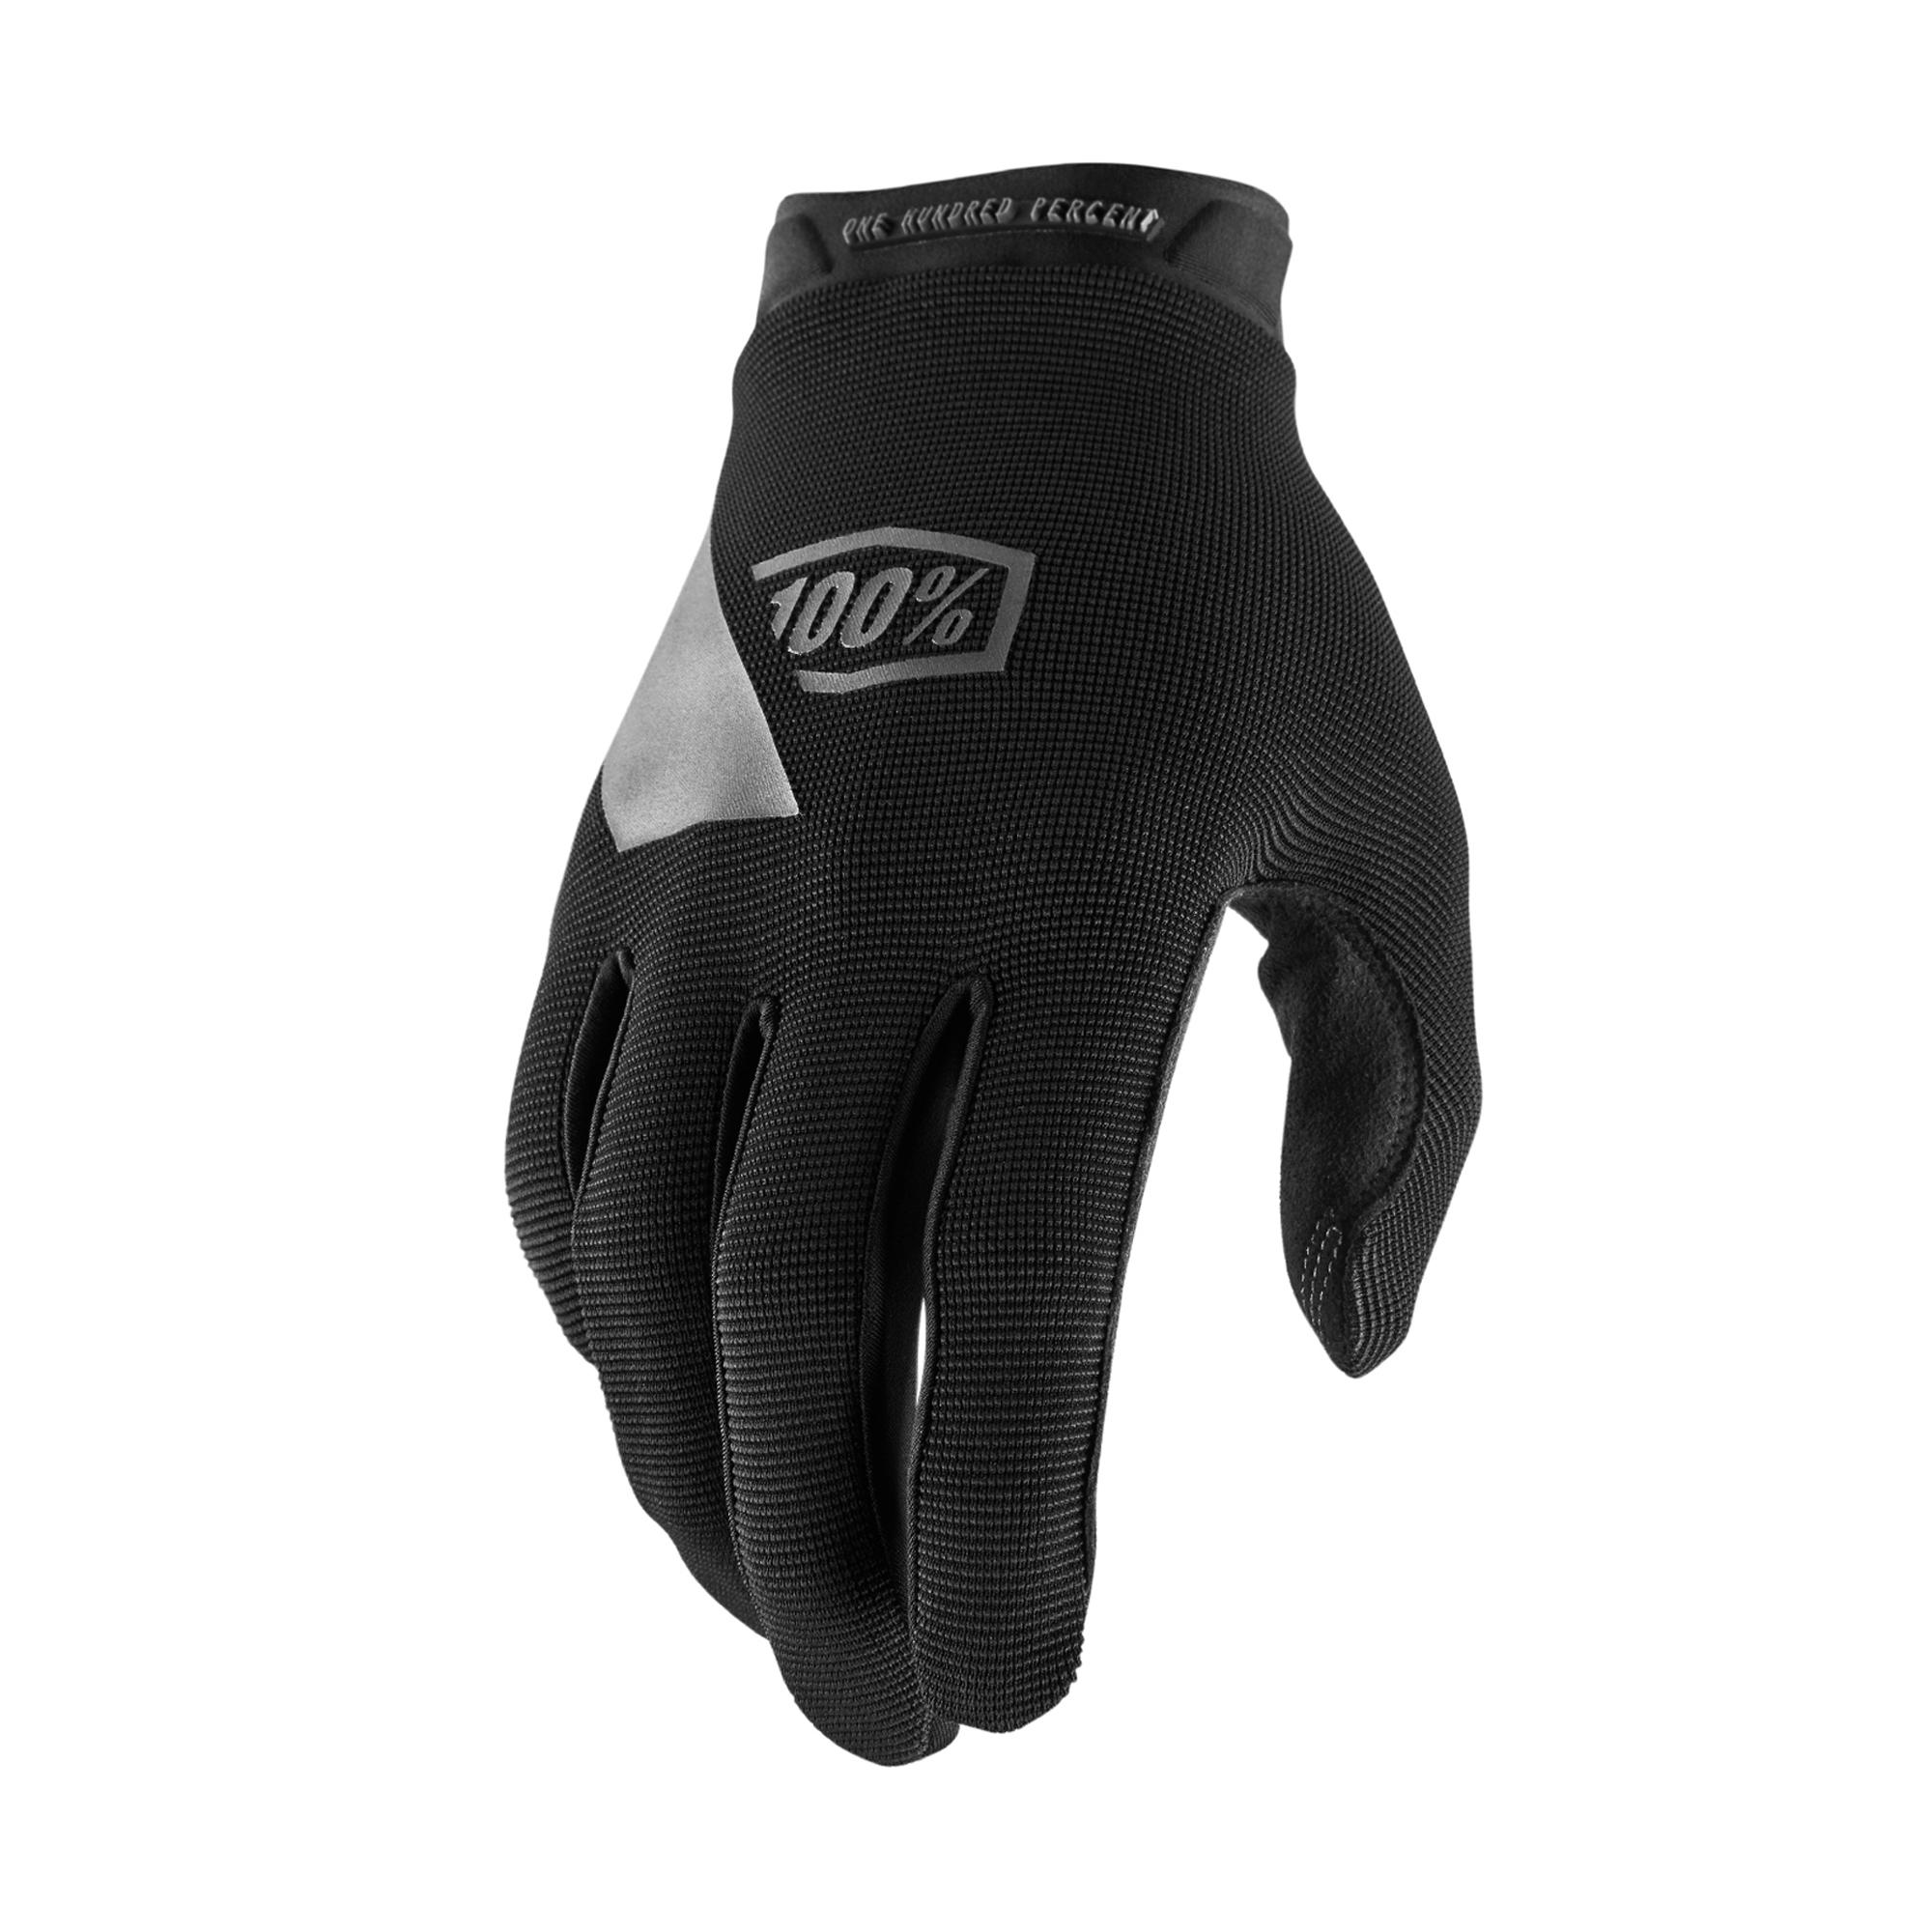 RIDECAMP Glove Black -